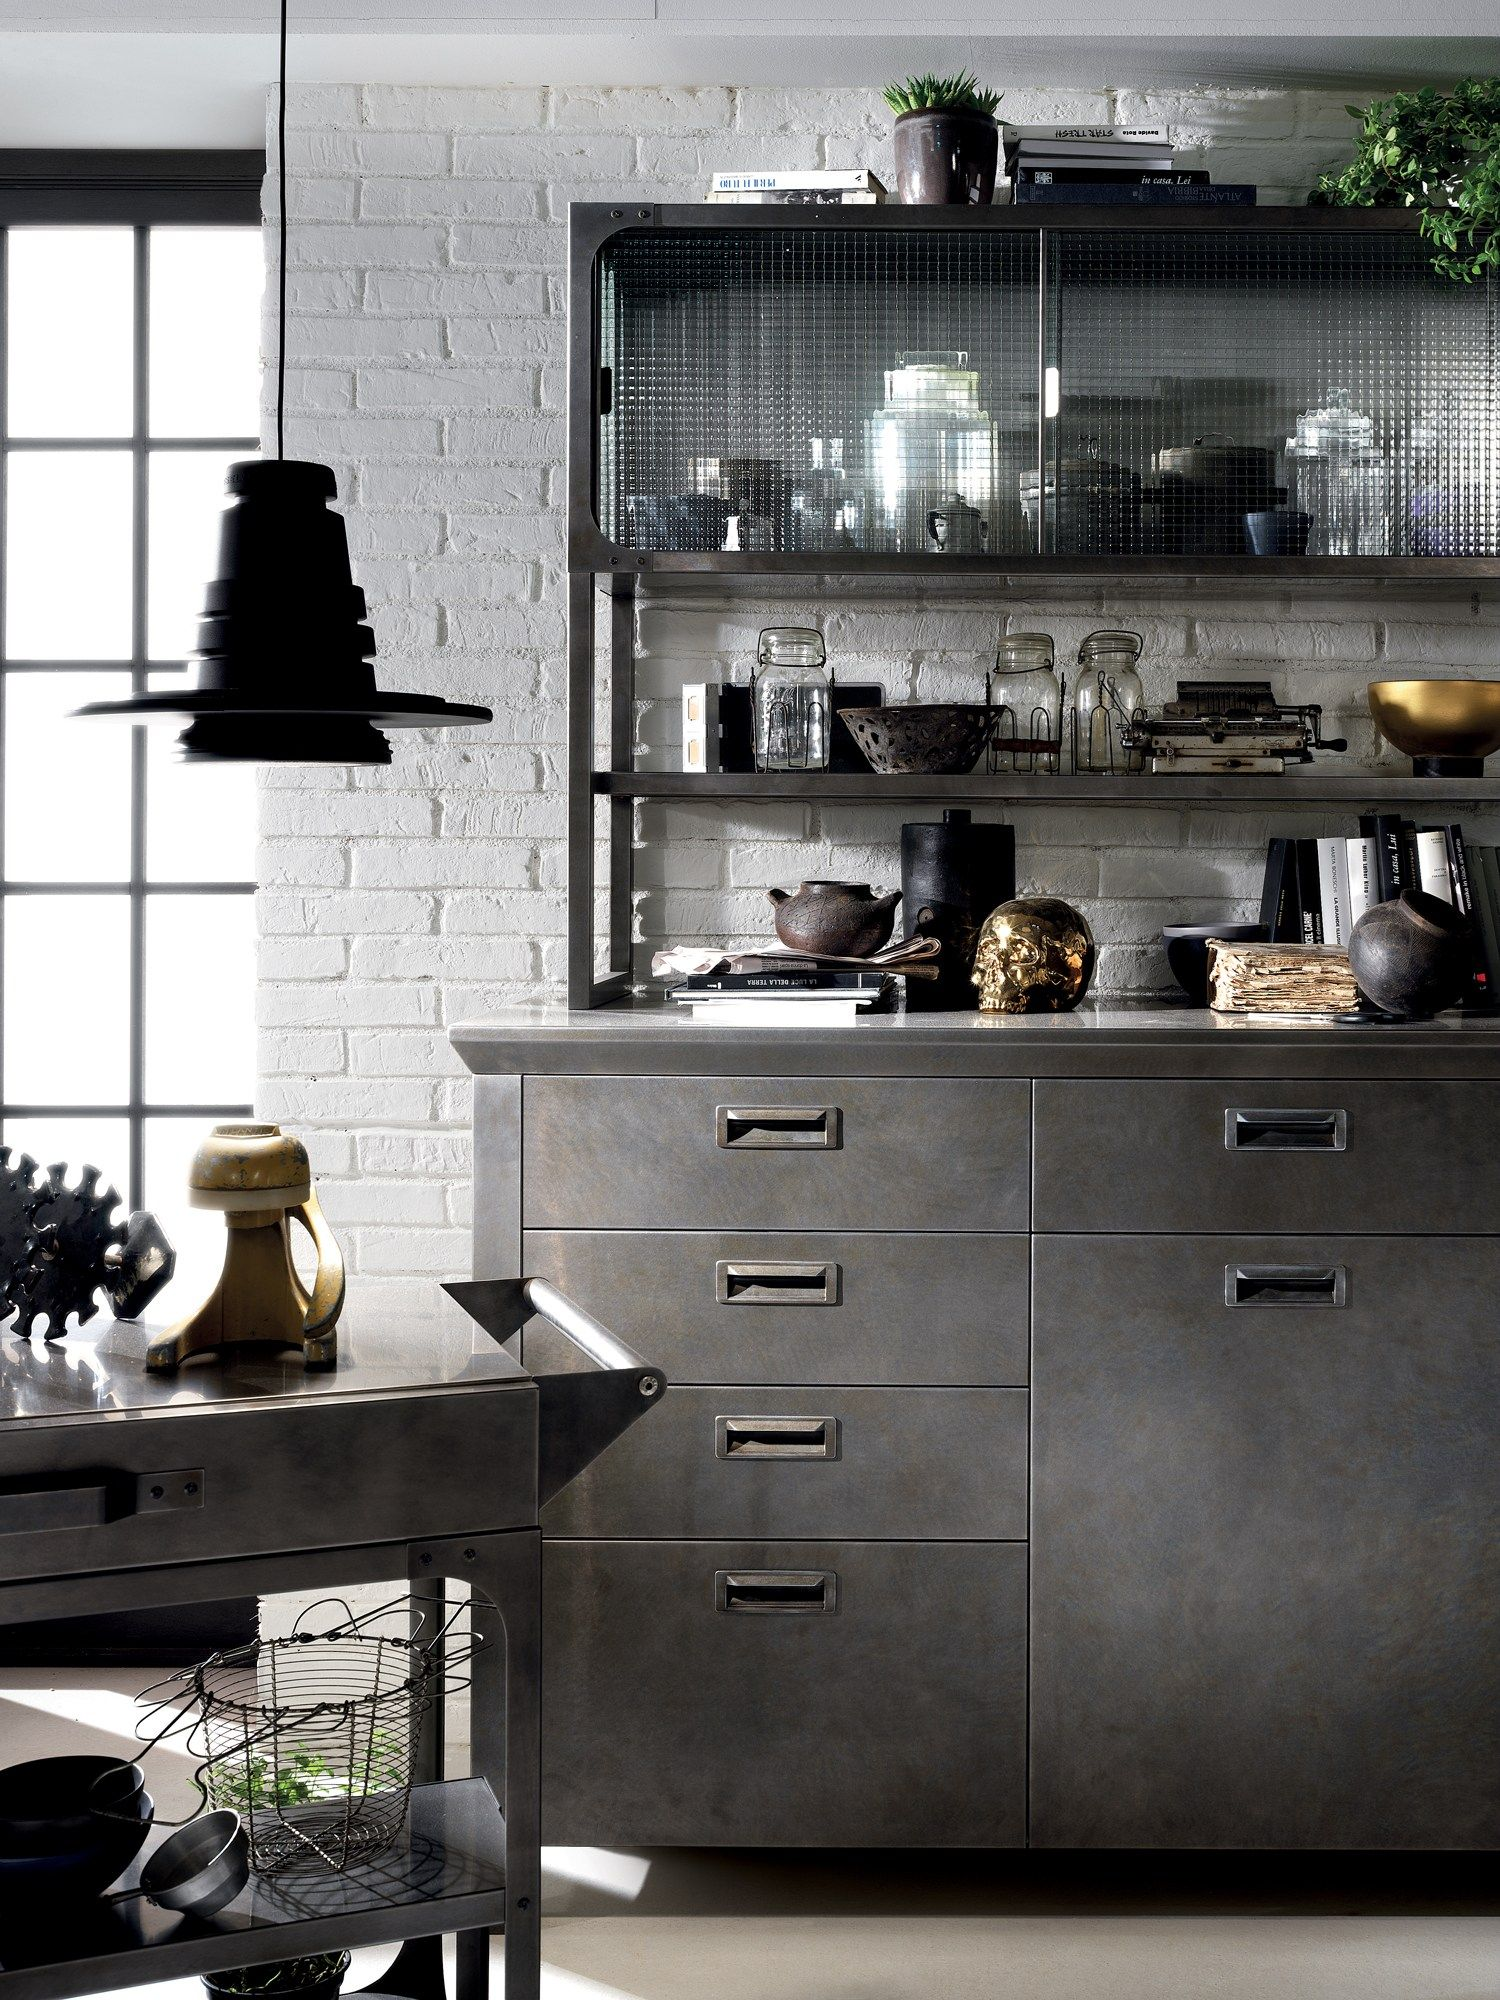 Cucina componibile DIESEL SOCIAL KITCHEN Linea Scavolini by